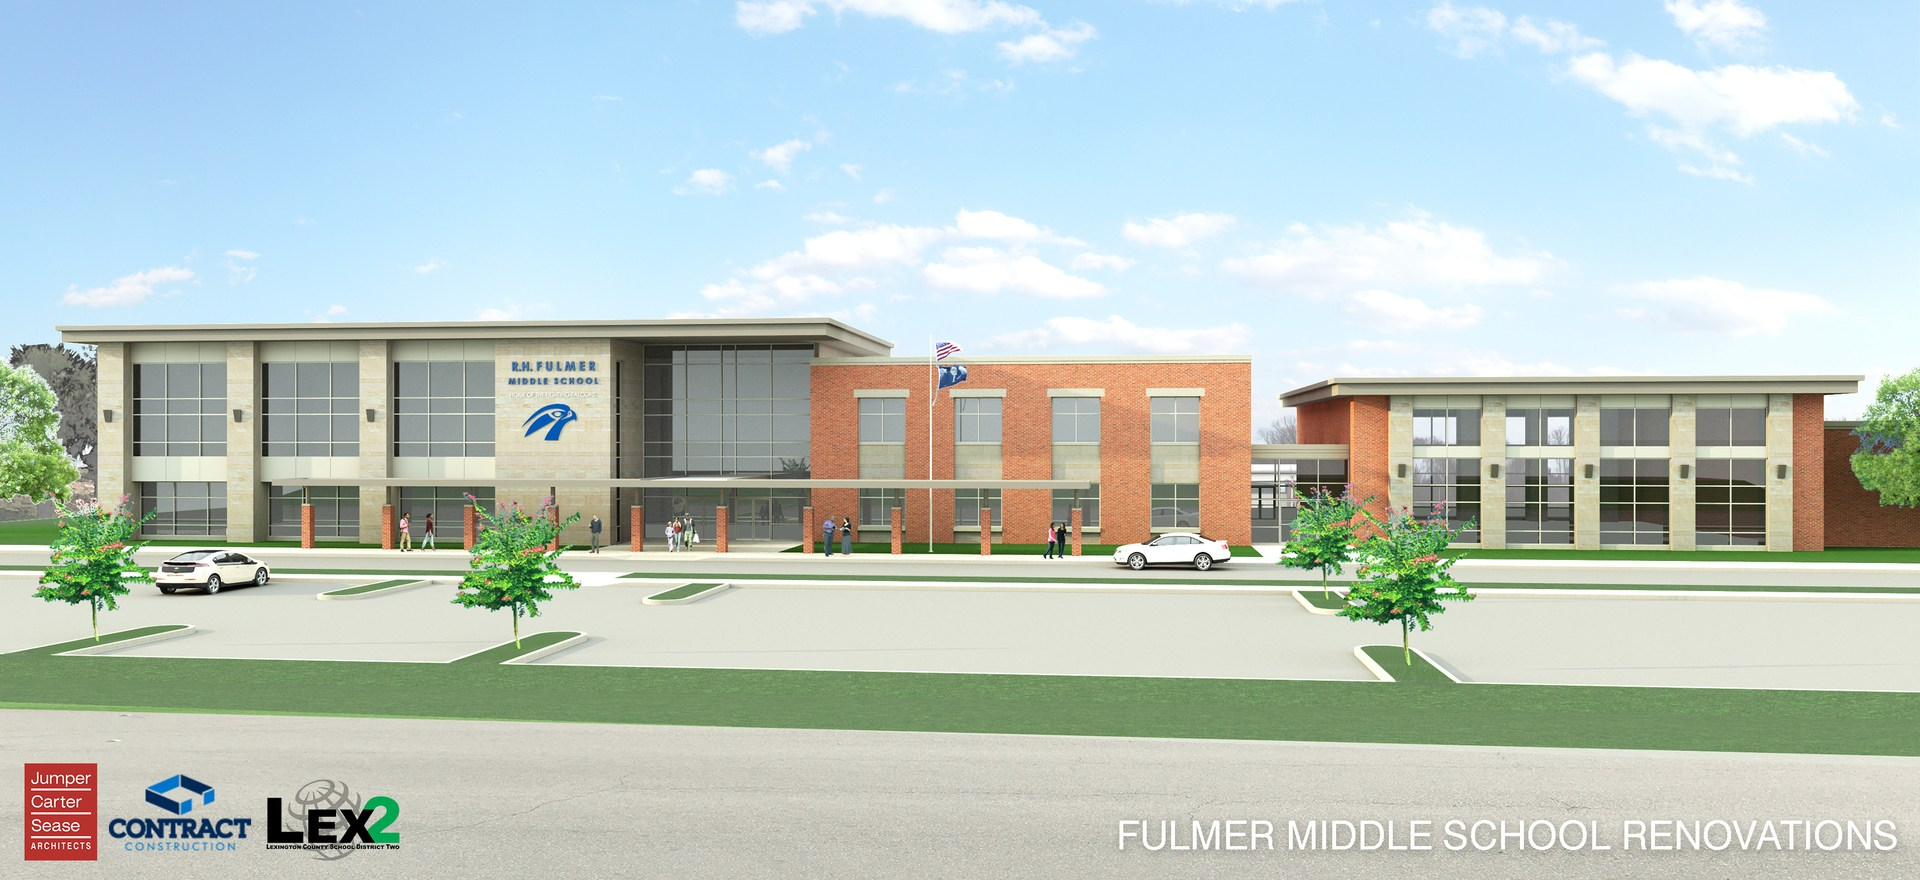 Architect's rendering of Fulmer Middle School front entrance.